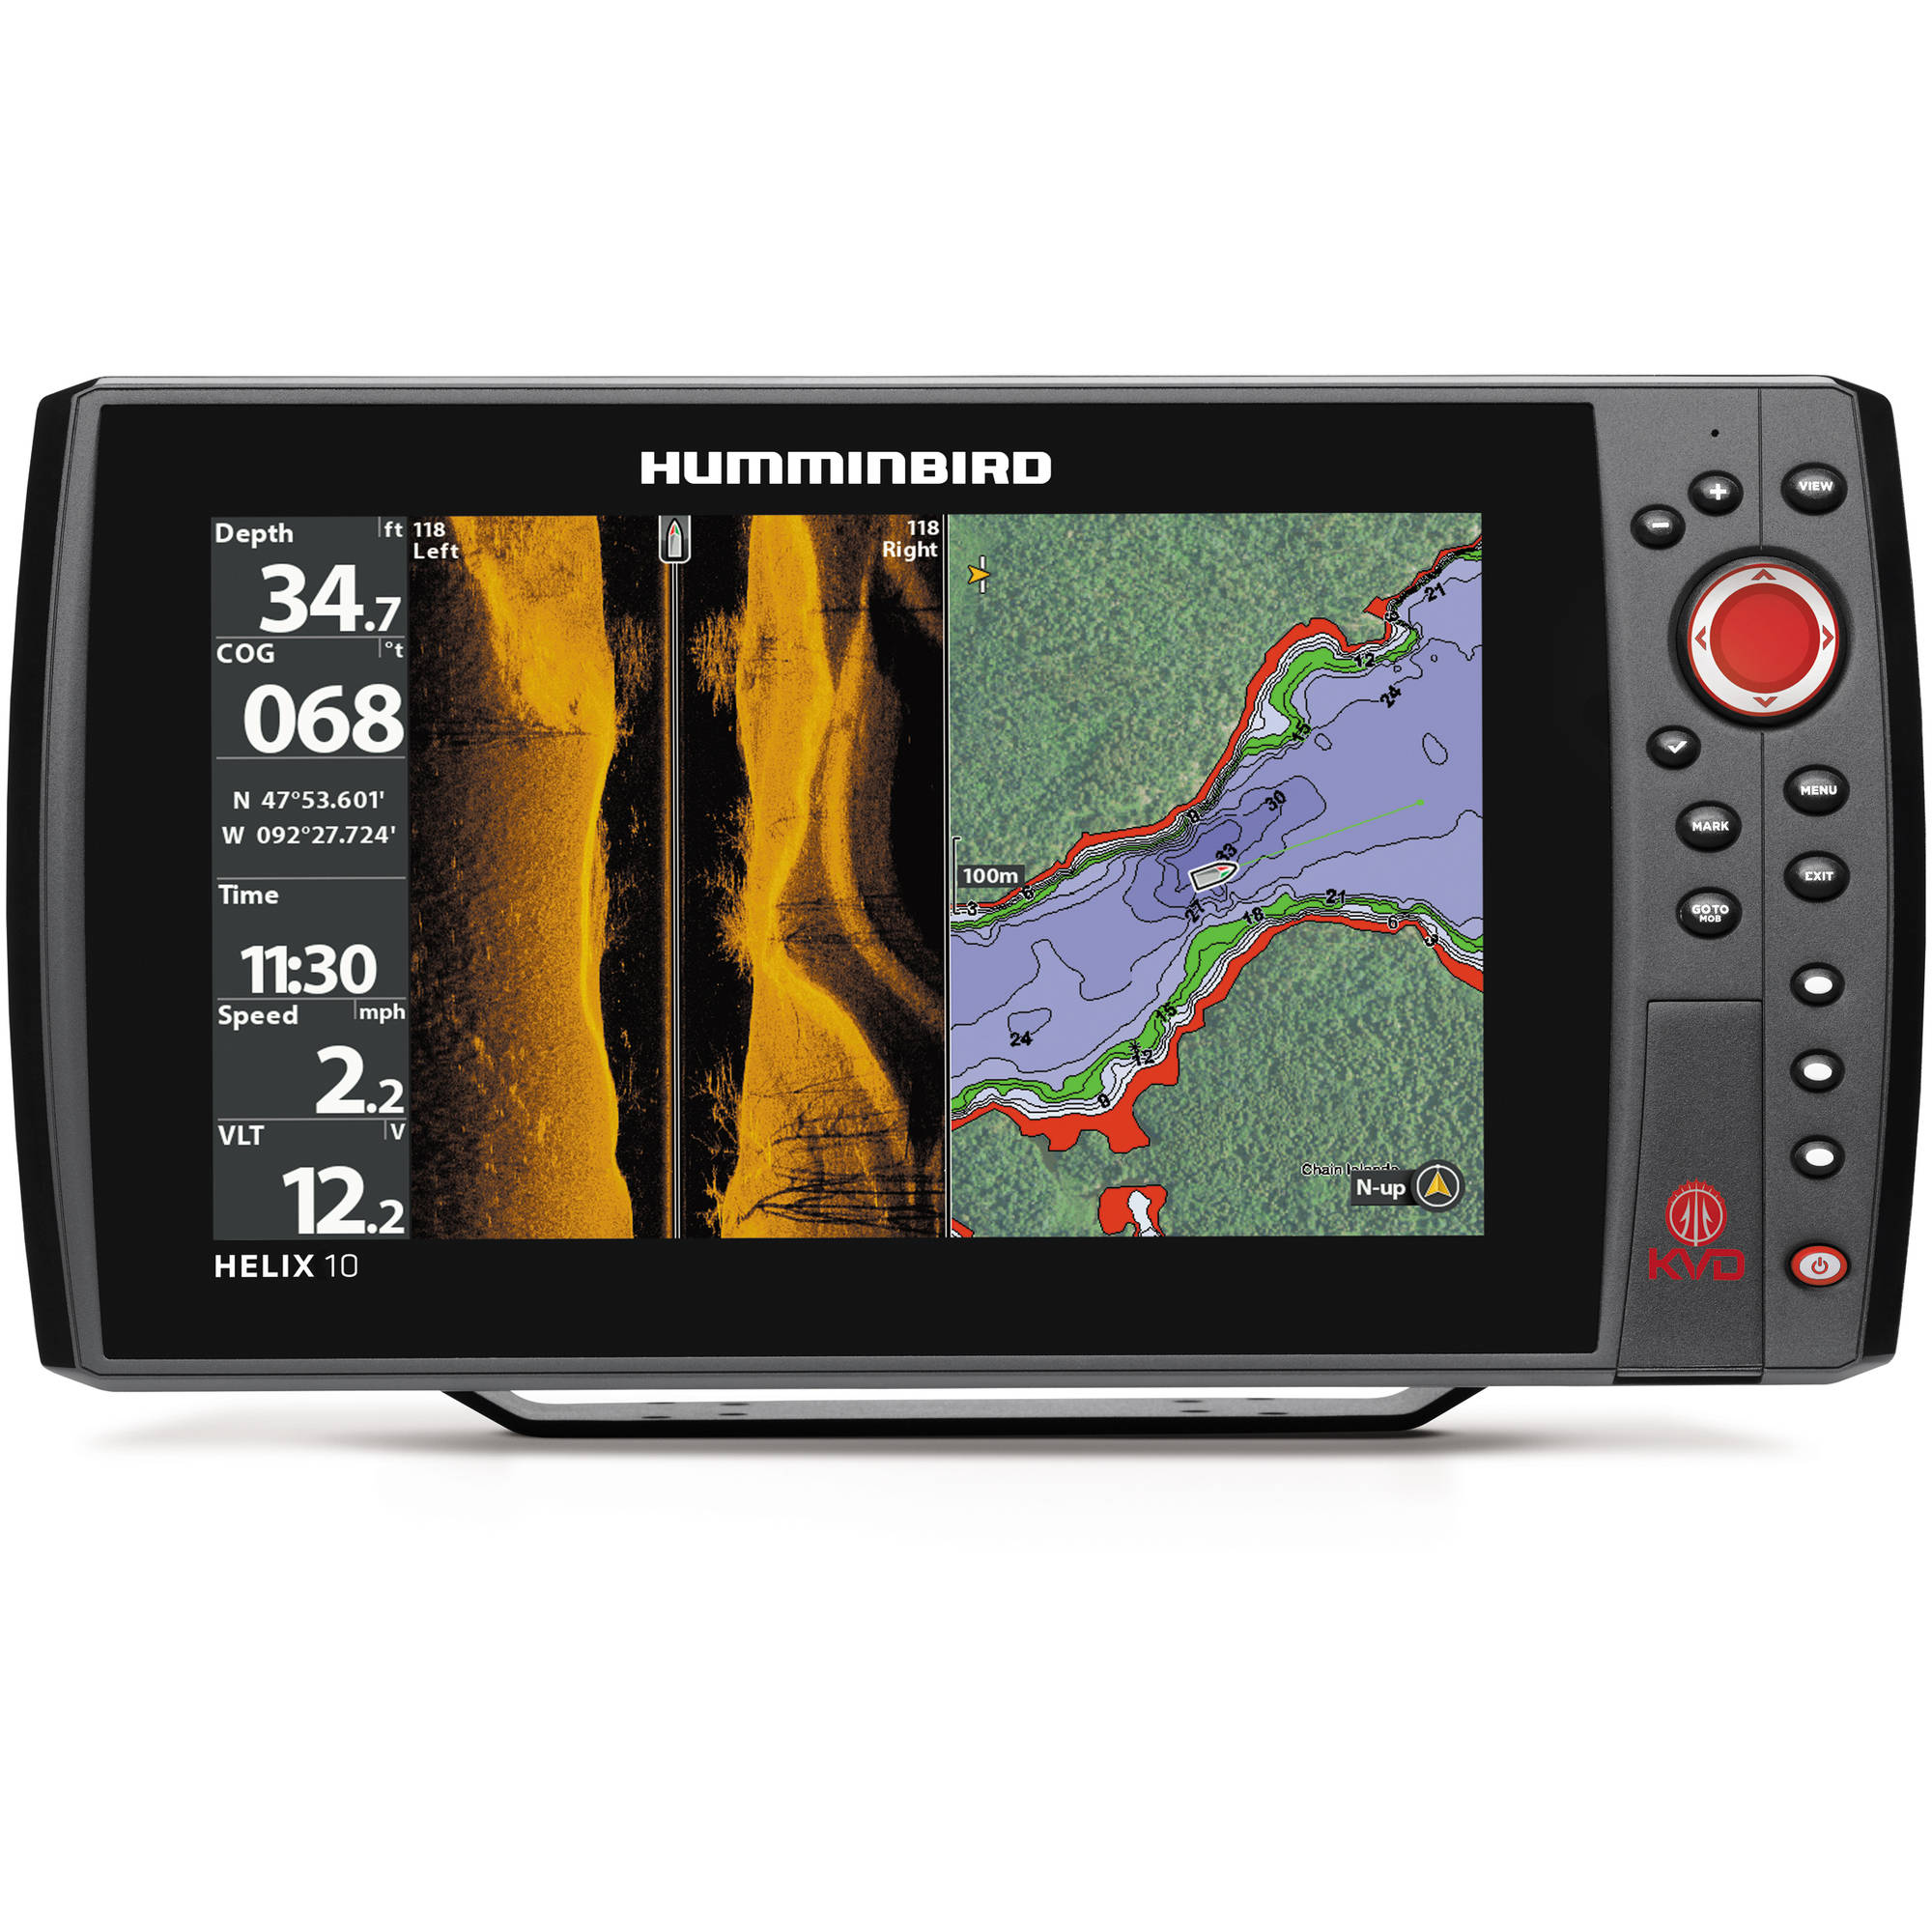 Humminbird HELIX 10 SI GPS KVD Fishfinder Combo with Side Imaging, Kevin Van Dam Edition